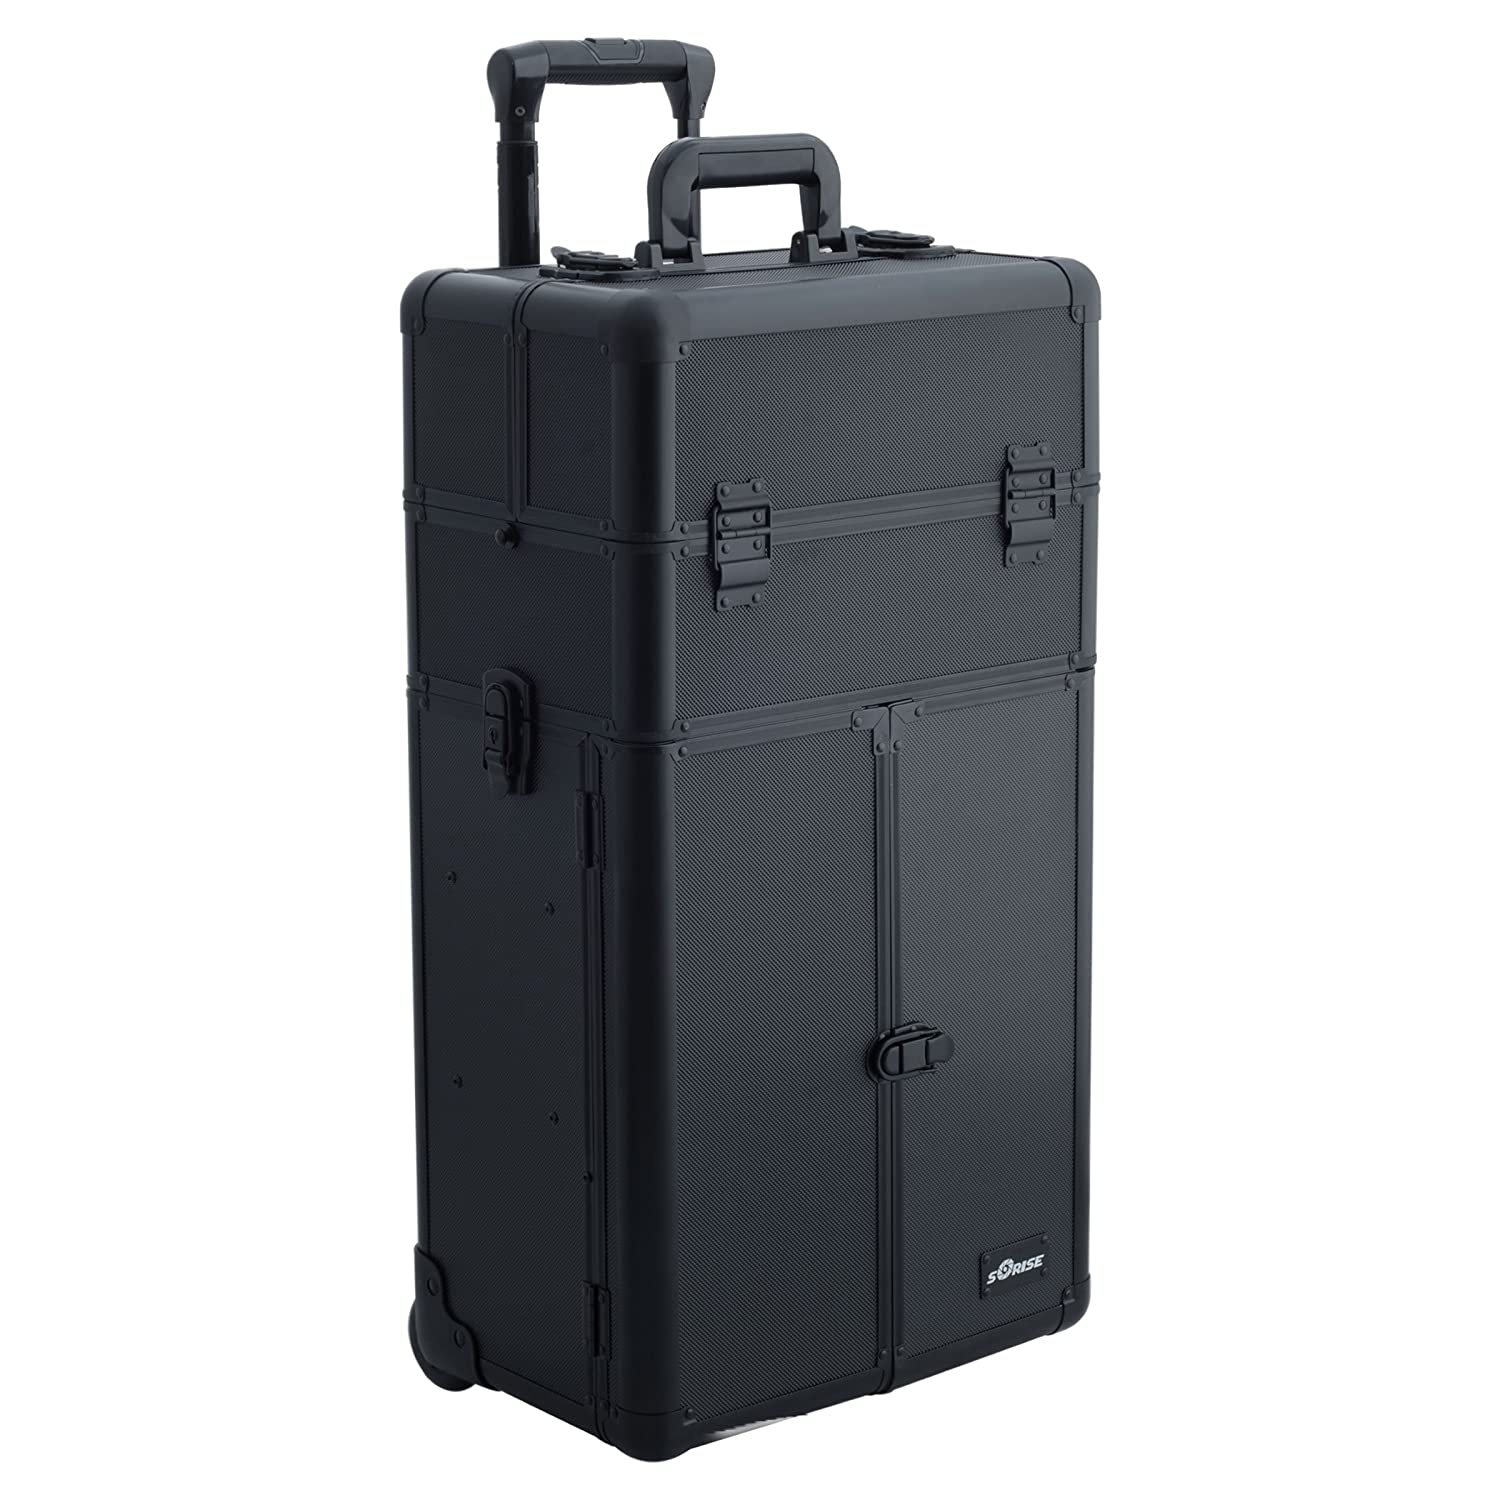 SUNRISE Makeup Rolling Case 2 in 1 Professional Artist I3565, French Doors, 3 Trays and 4 Drawers, Locking with Mirror and Shoulder Strap, Black Dot